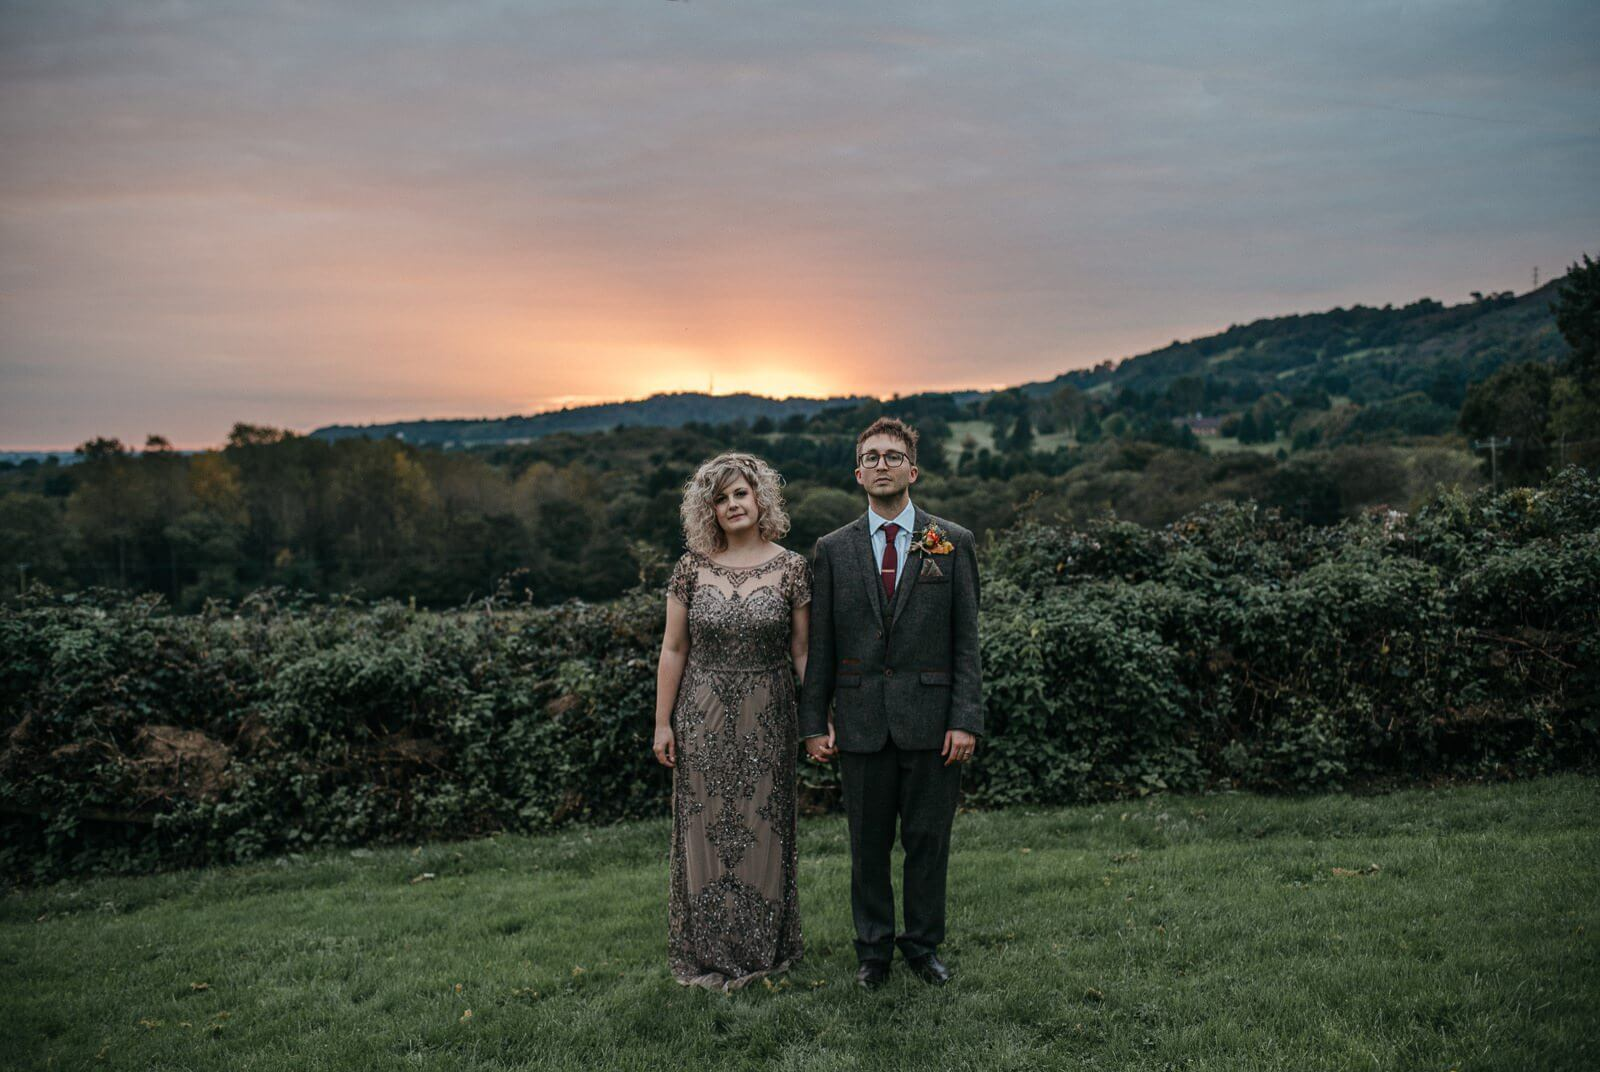 Bride and Groom in alternative couple portrait infant of Cardiff landscape and autumn sunset at Ty Mawr